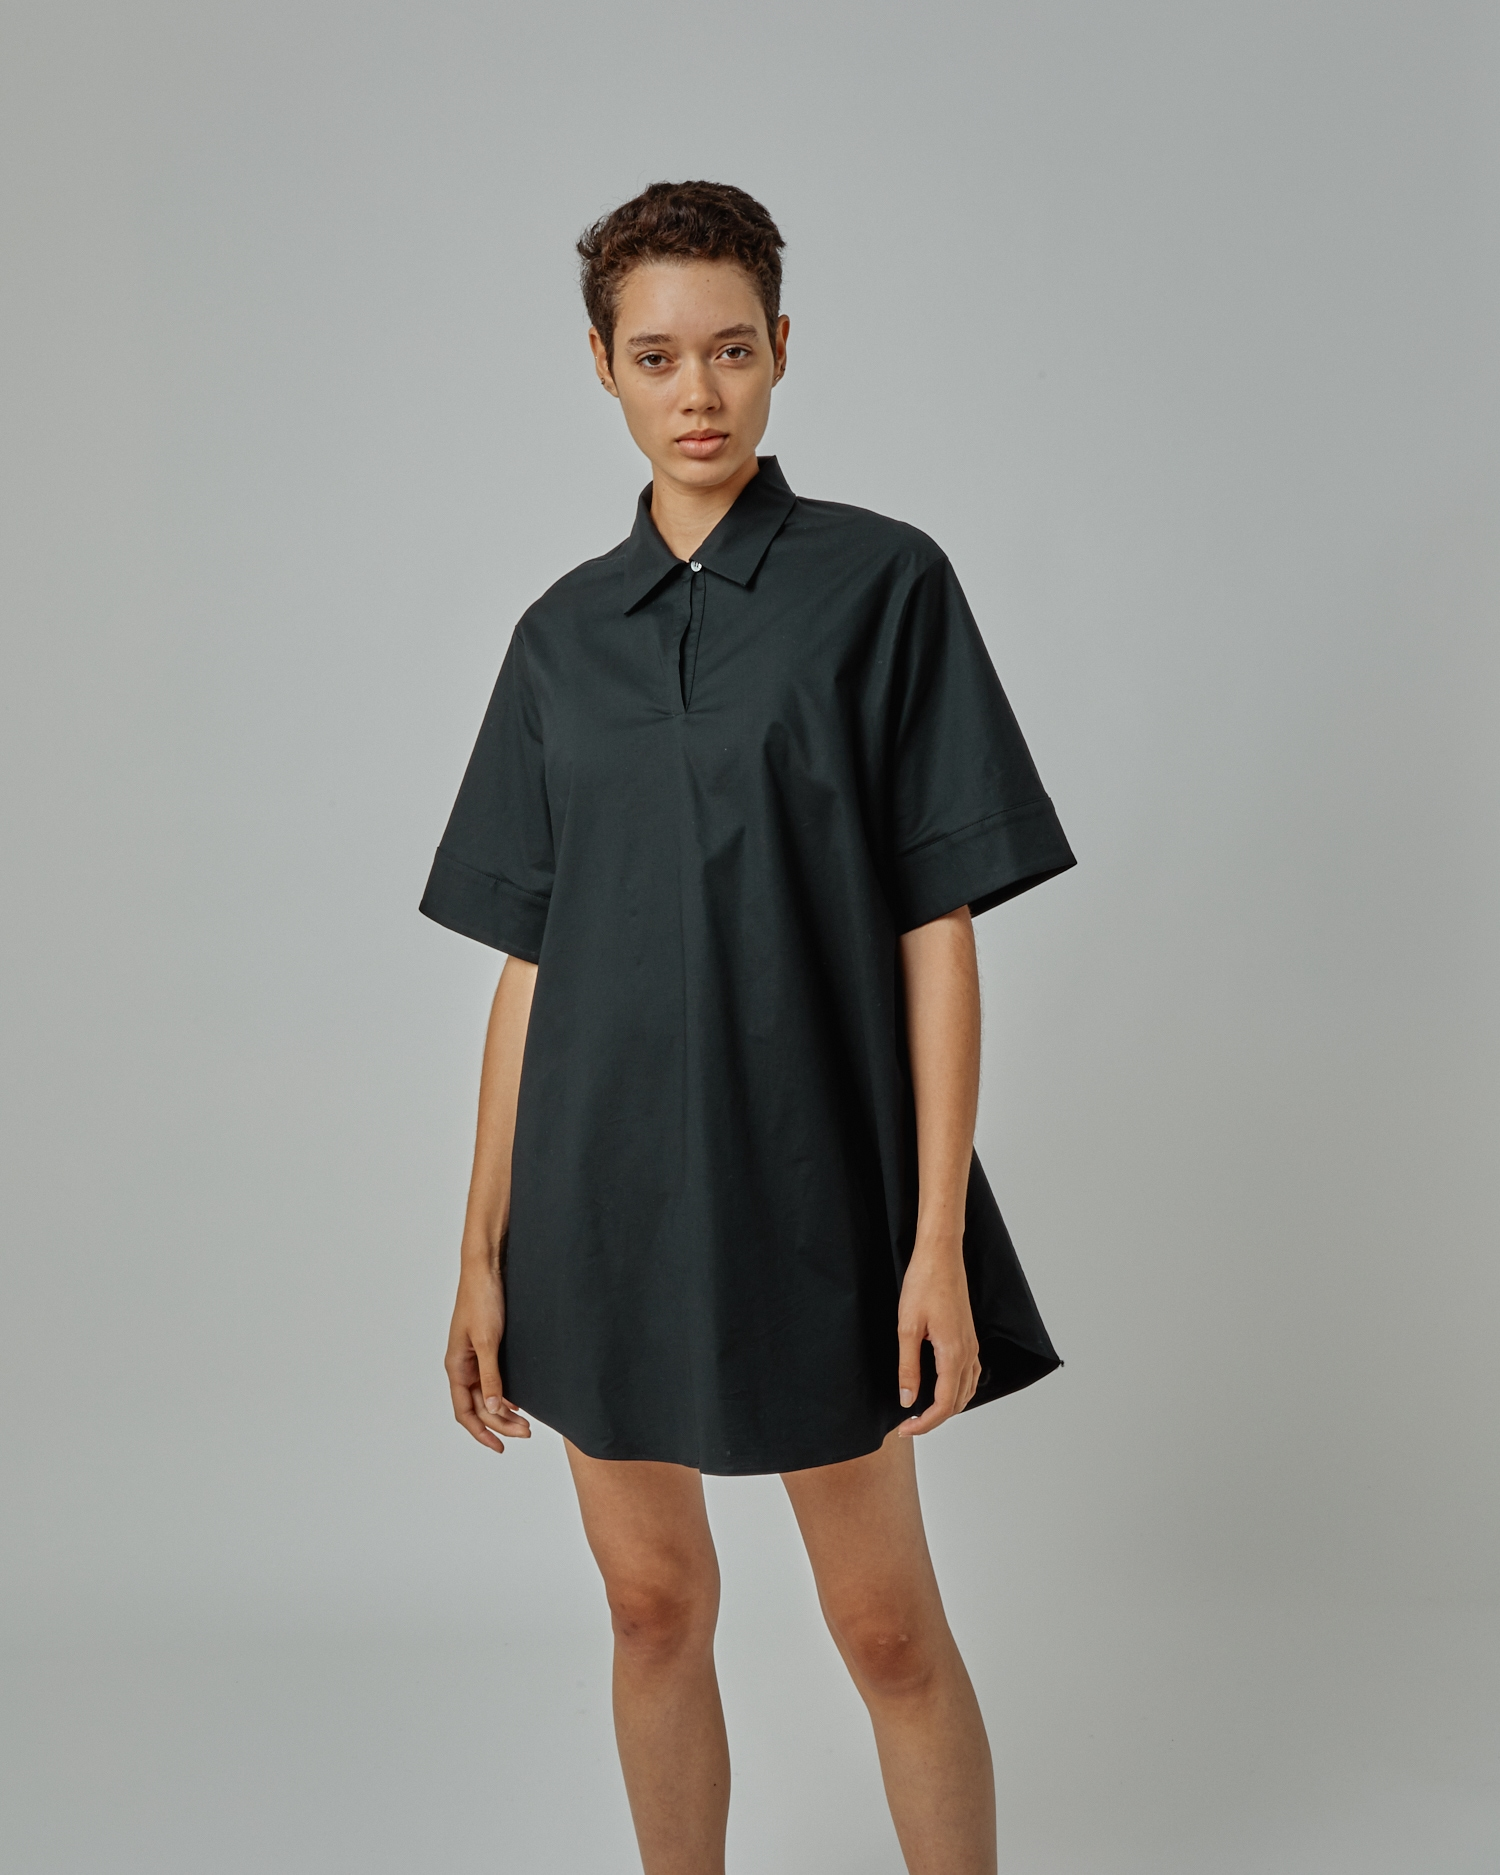 Designer Tunic In Black Poplin. Designed In New York By One DNA